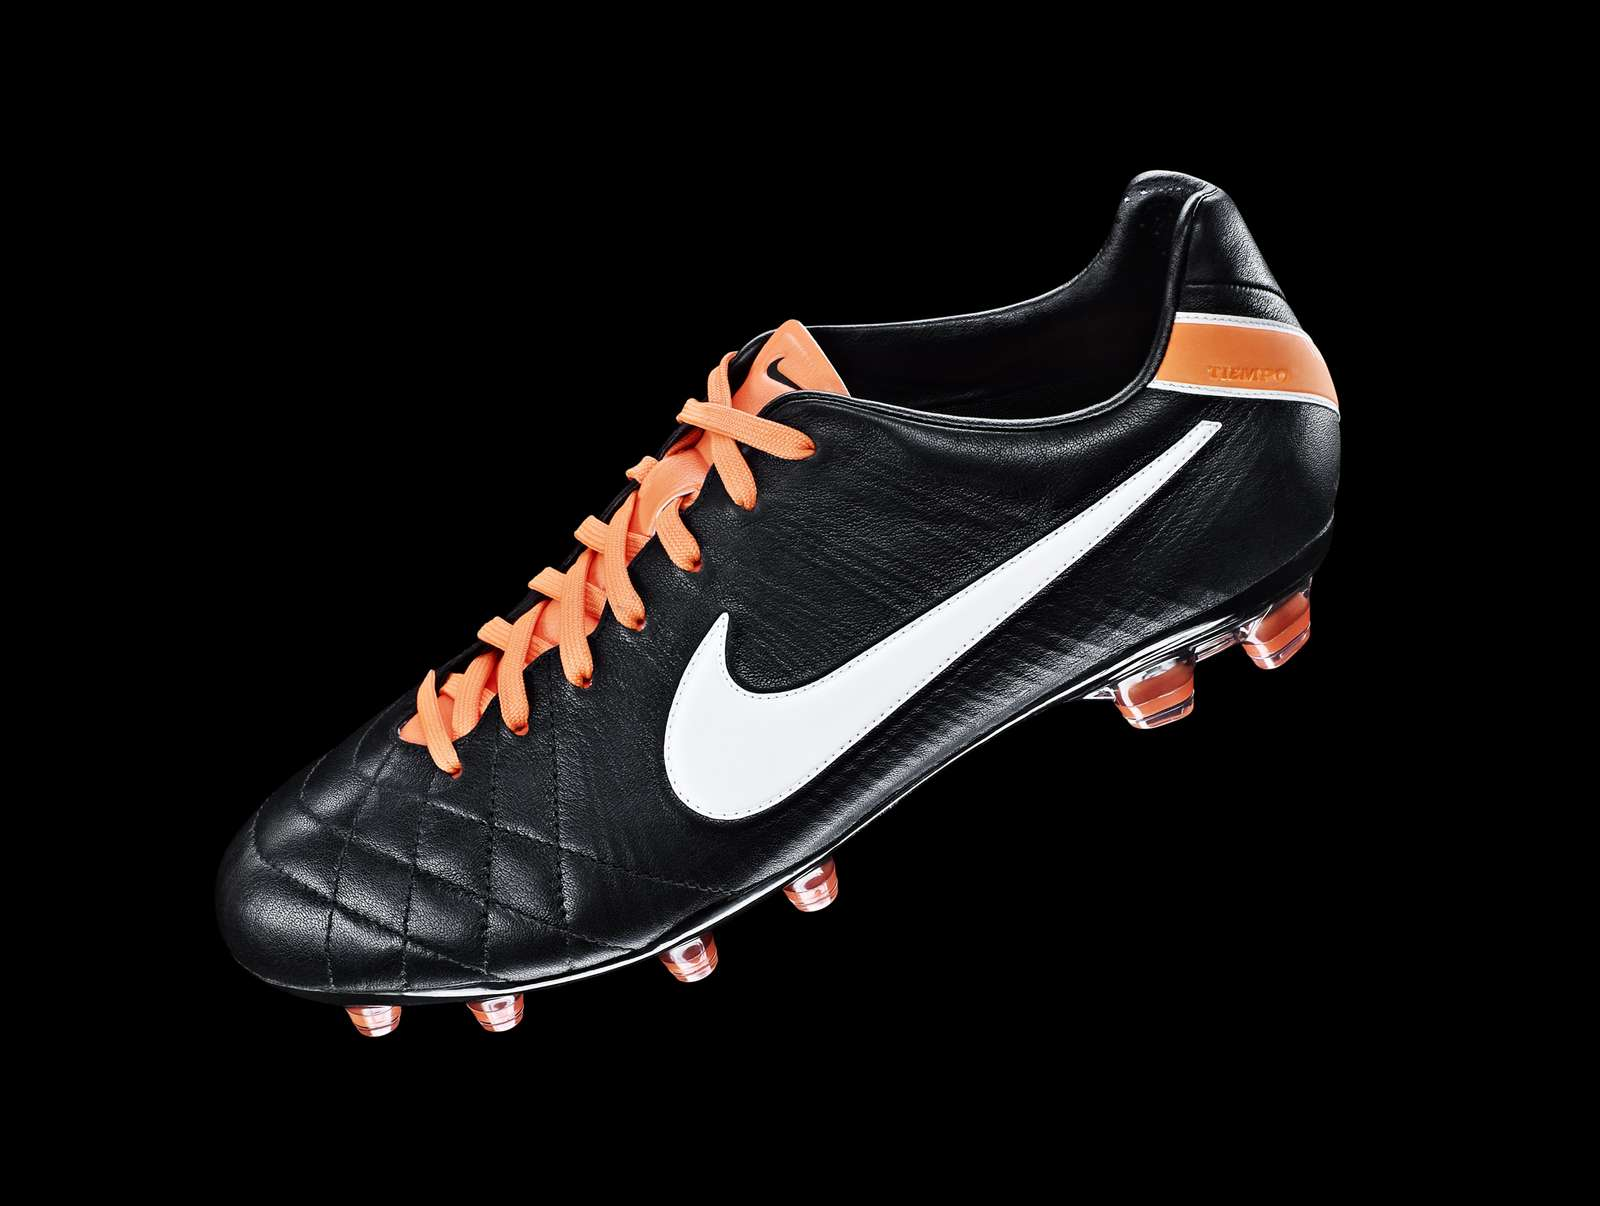 d25e453c376a8 Colorway Leaked  Nike to Release Nike Tiempo Legend 4 2019 Remake ...